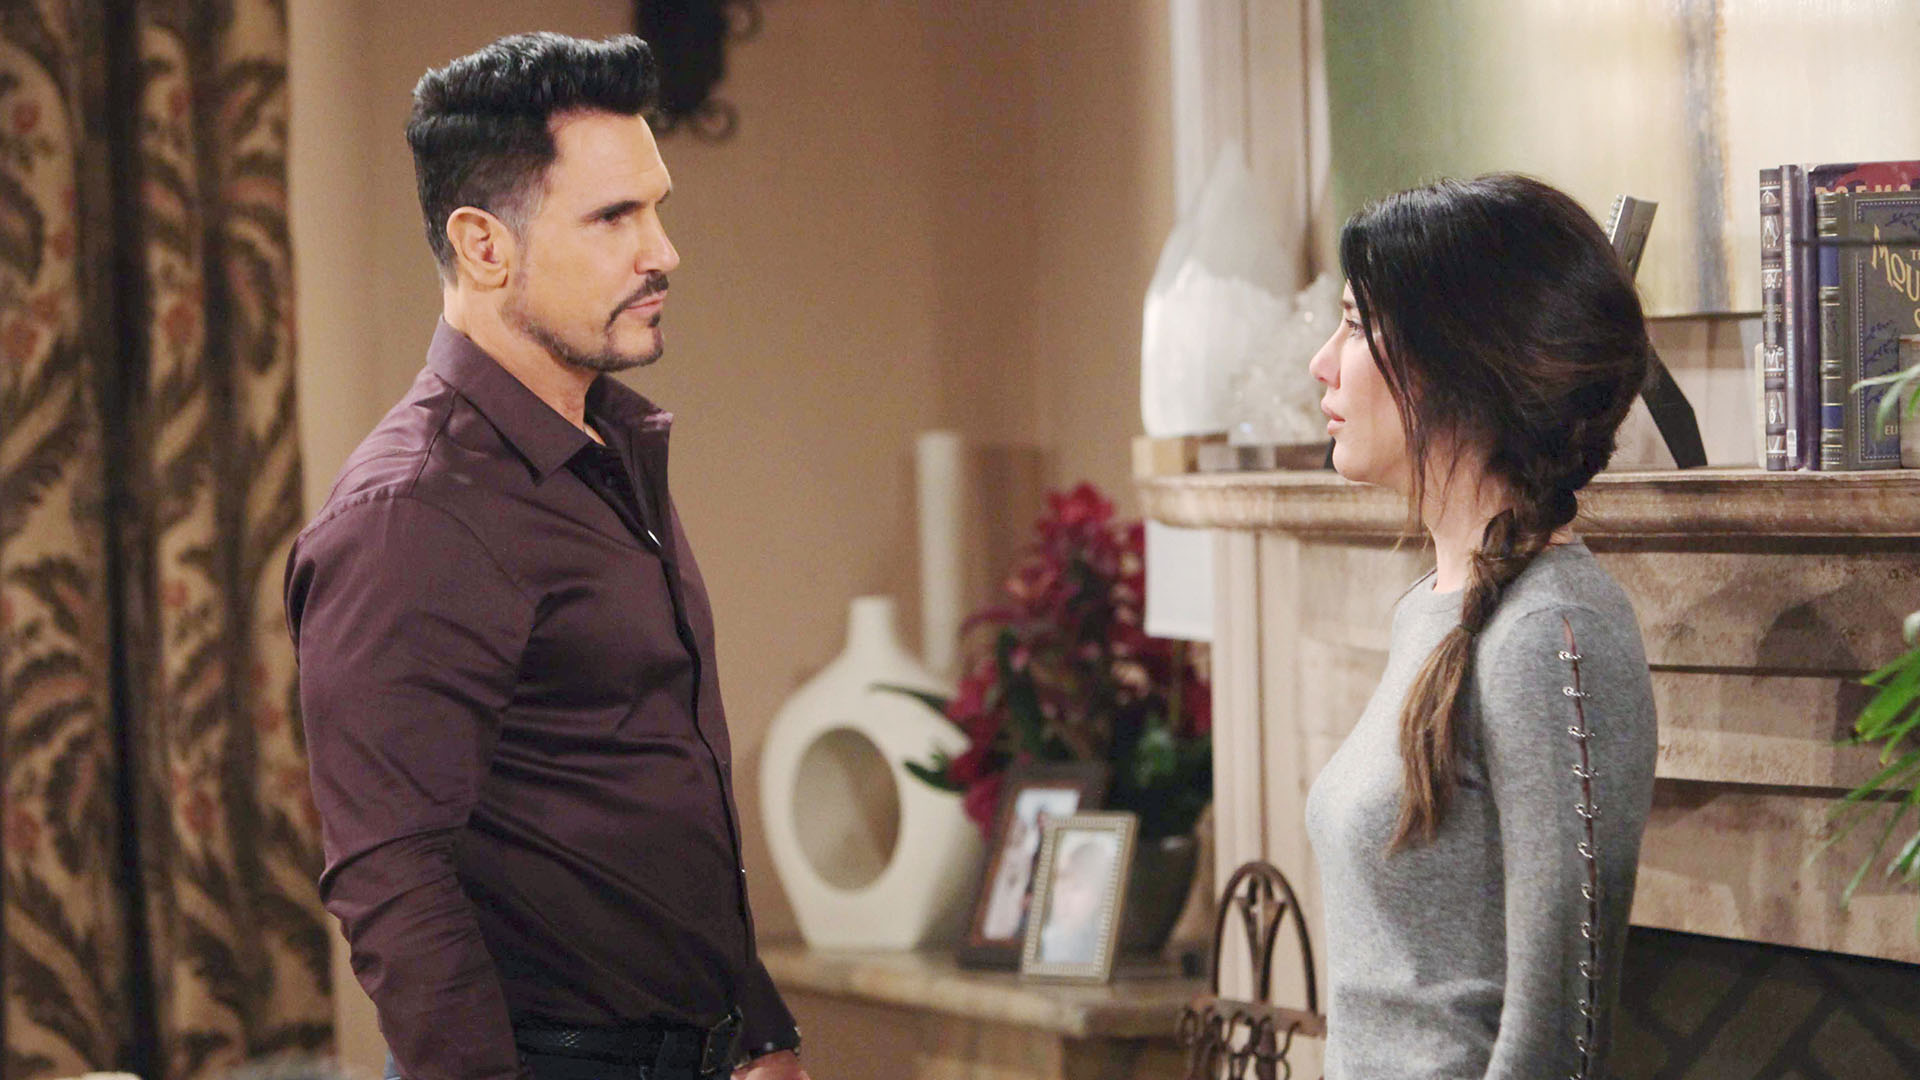 Bill warns Steffy of the huge price they both will pay if their secret is revealed.